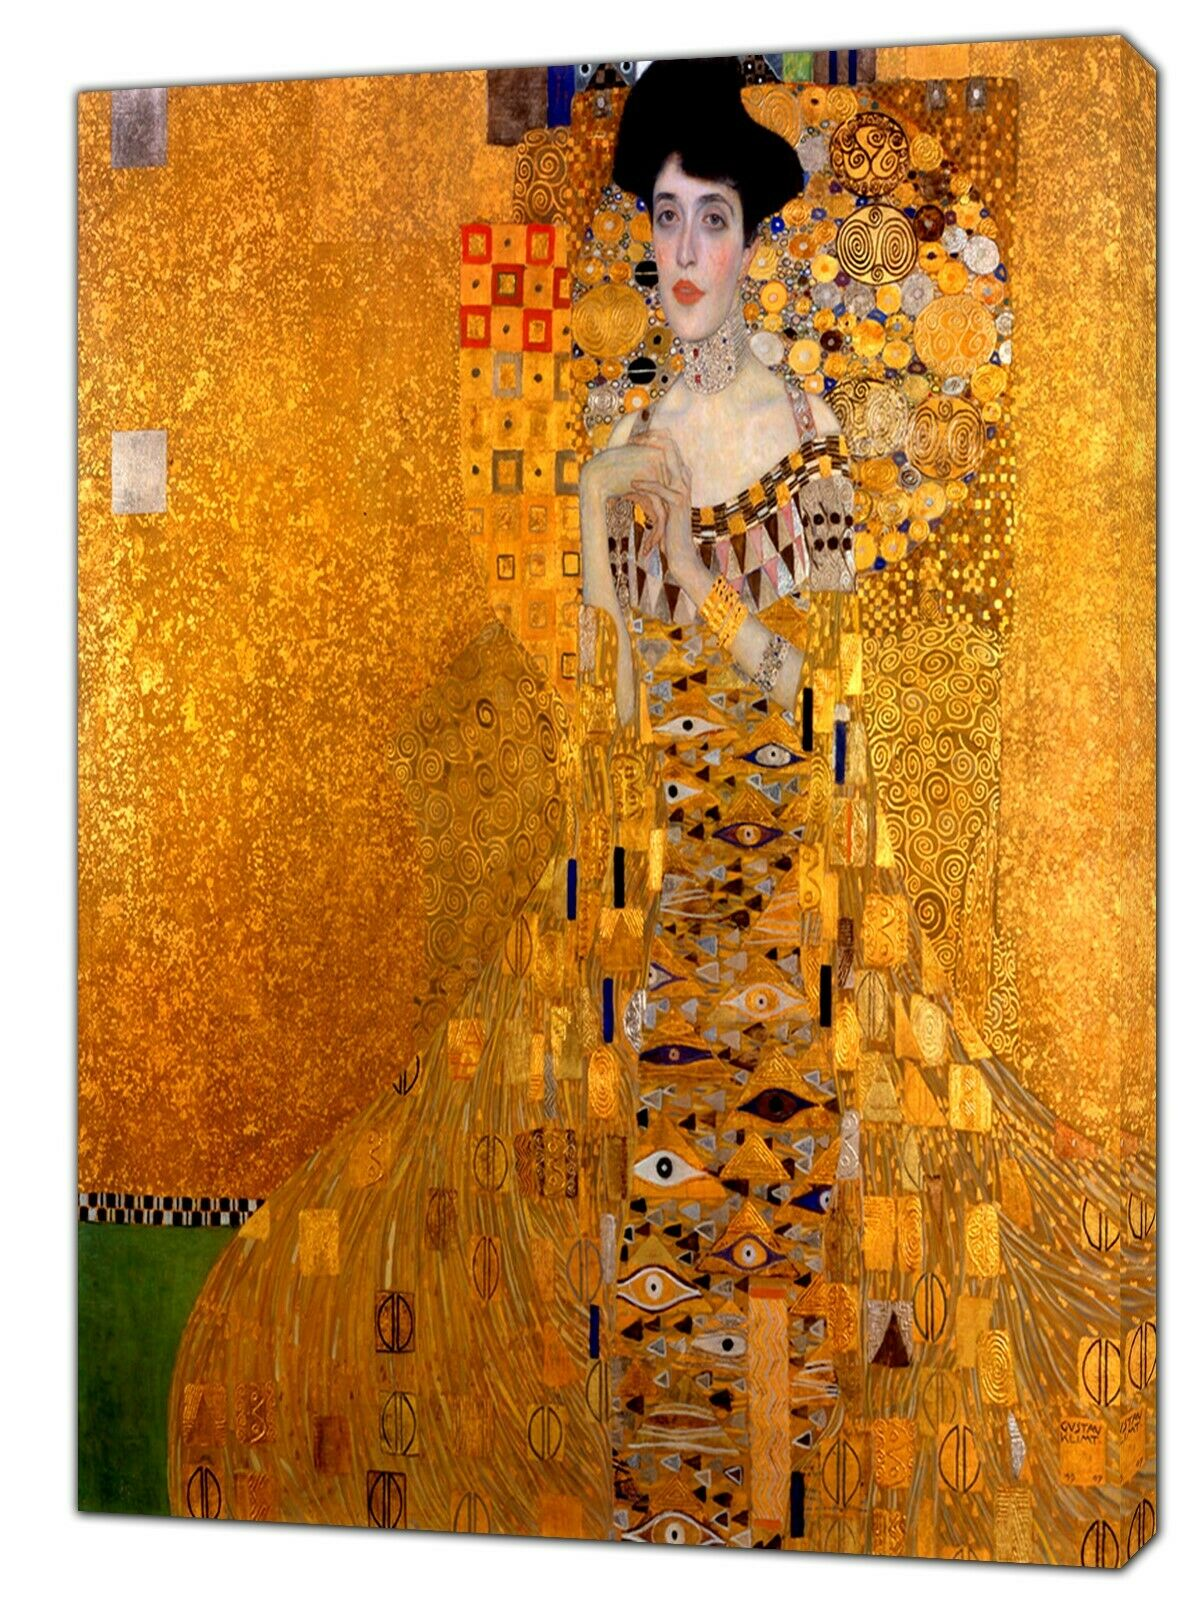 Gustav Klimt Adele Bosh Oil Paint   Reprint On Framed Canvas Wall Art Home Decor